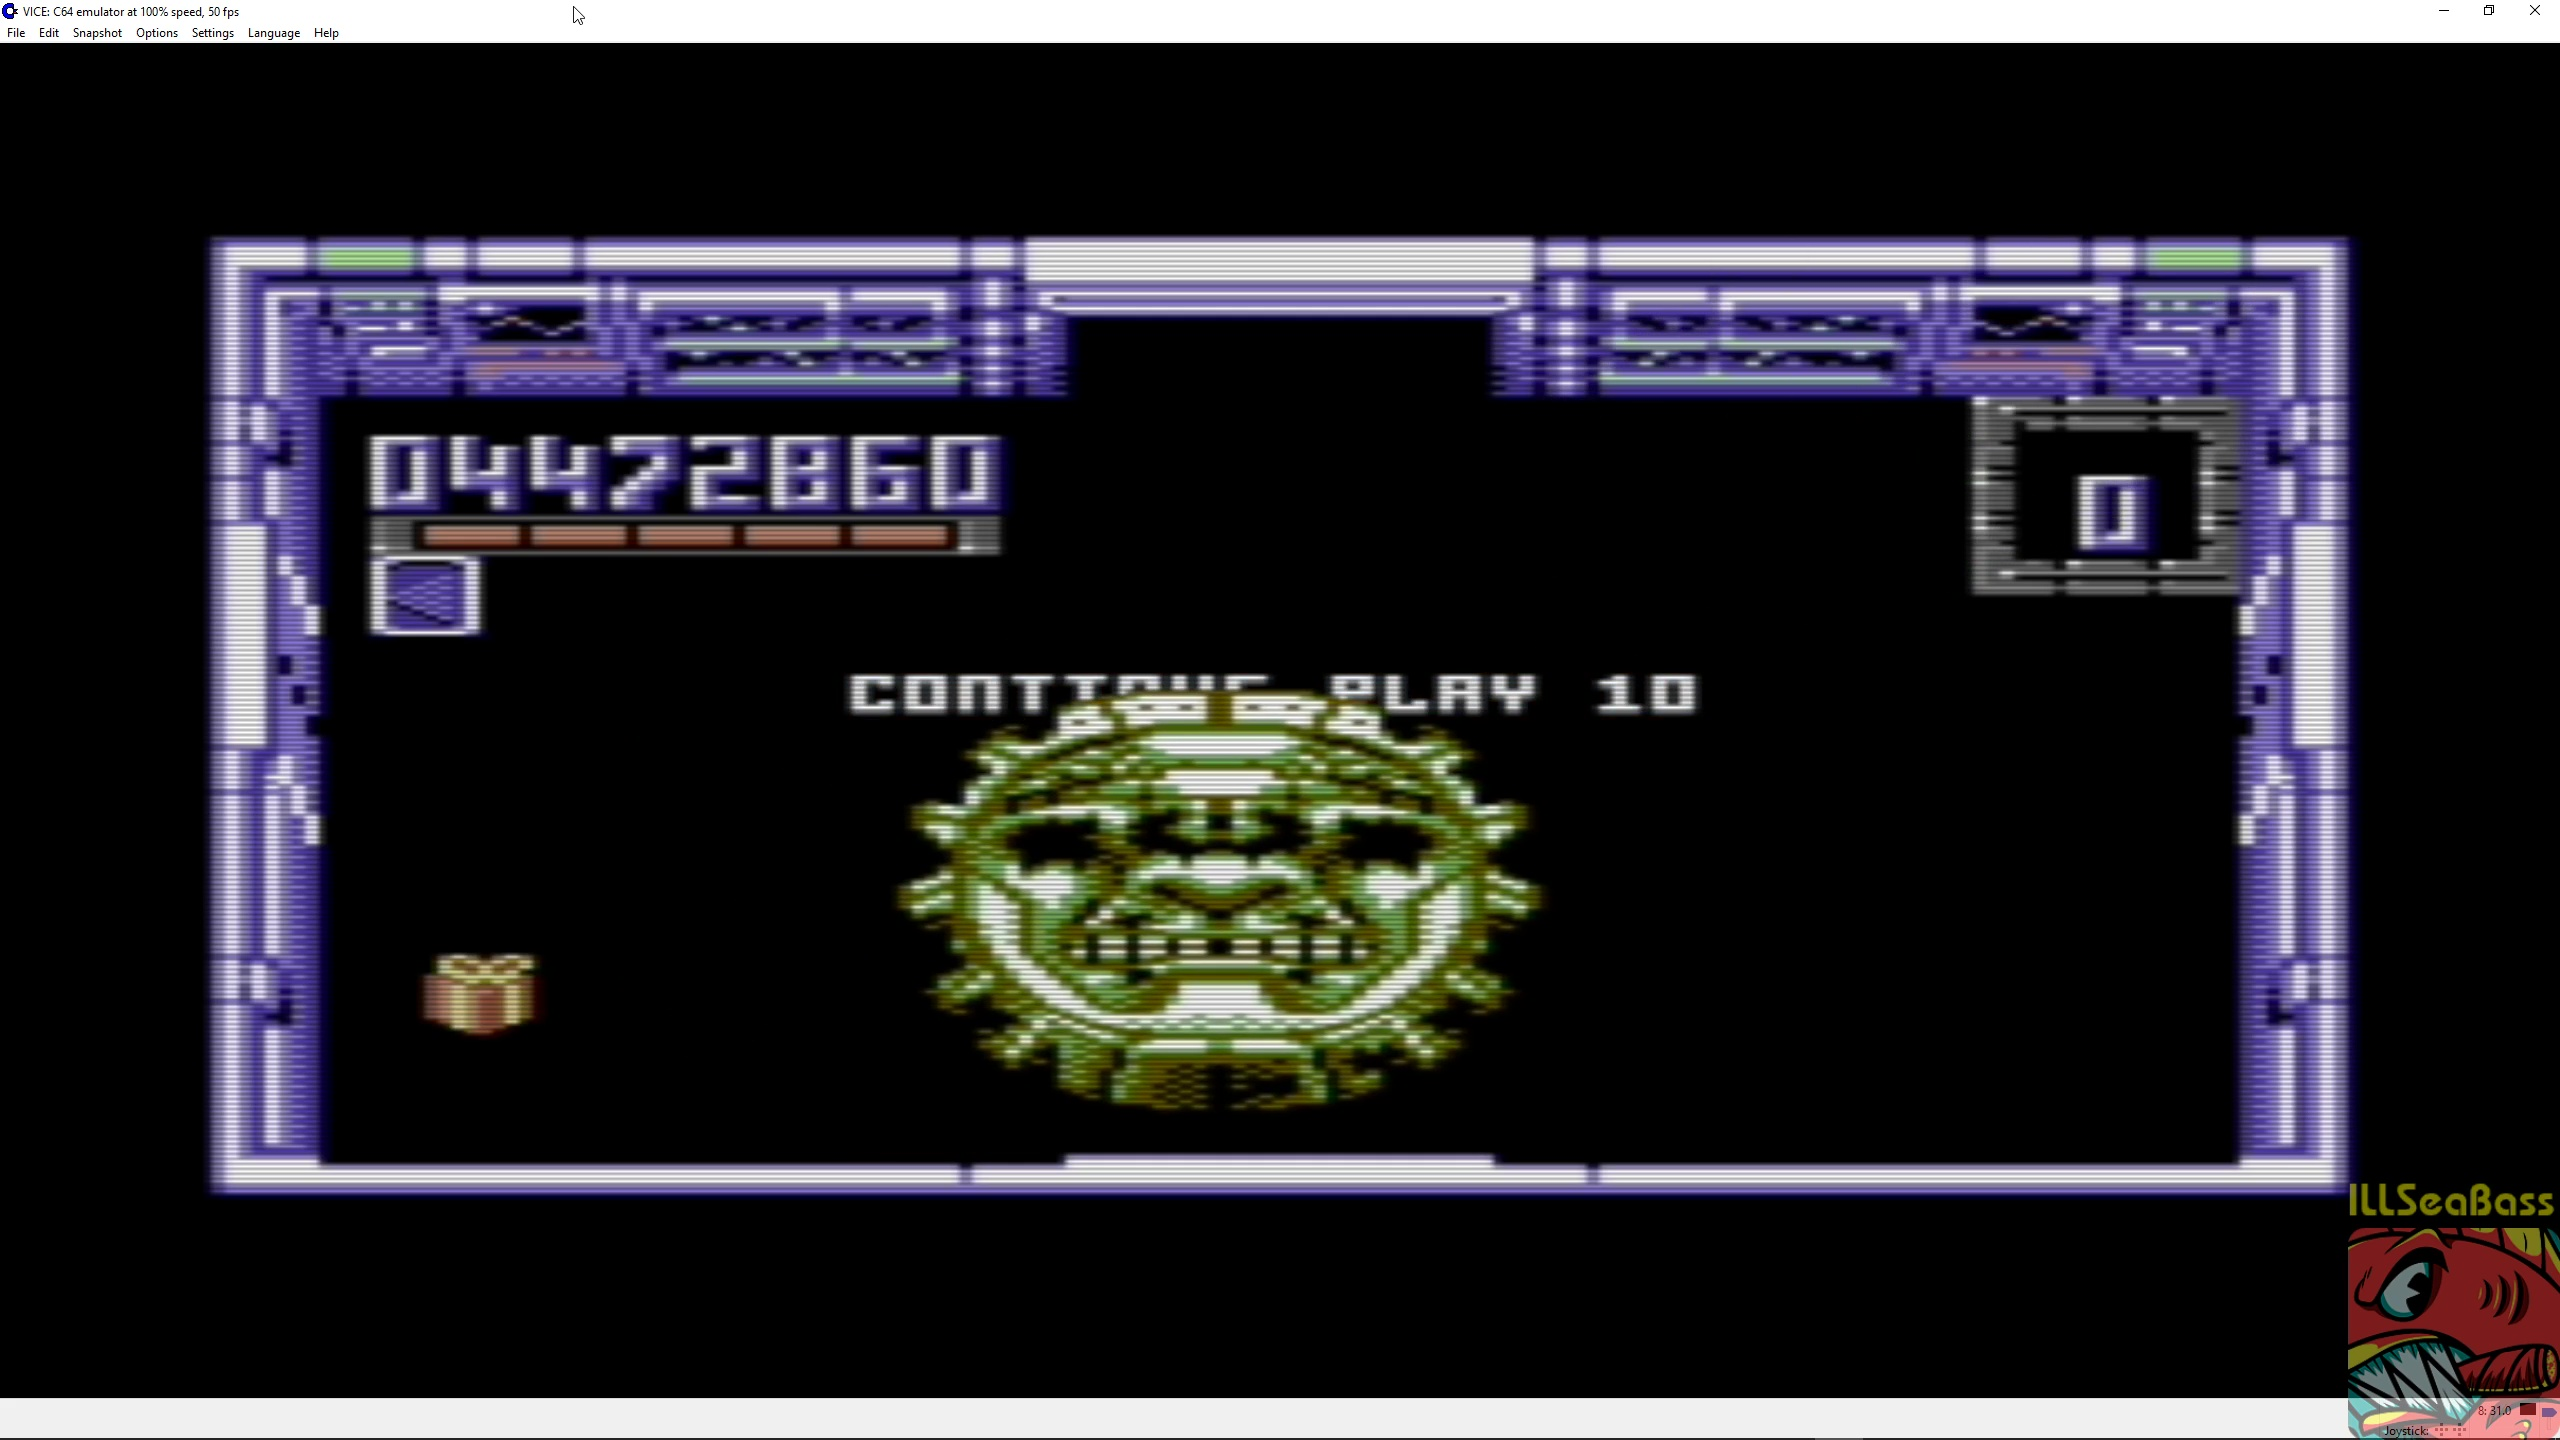 ILLSeaBass: Smash TV (Commodore 64 Emulated) 4,472,860 points on 2018-04-02 17:58:46